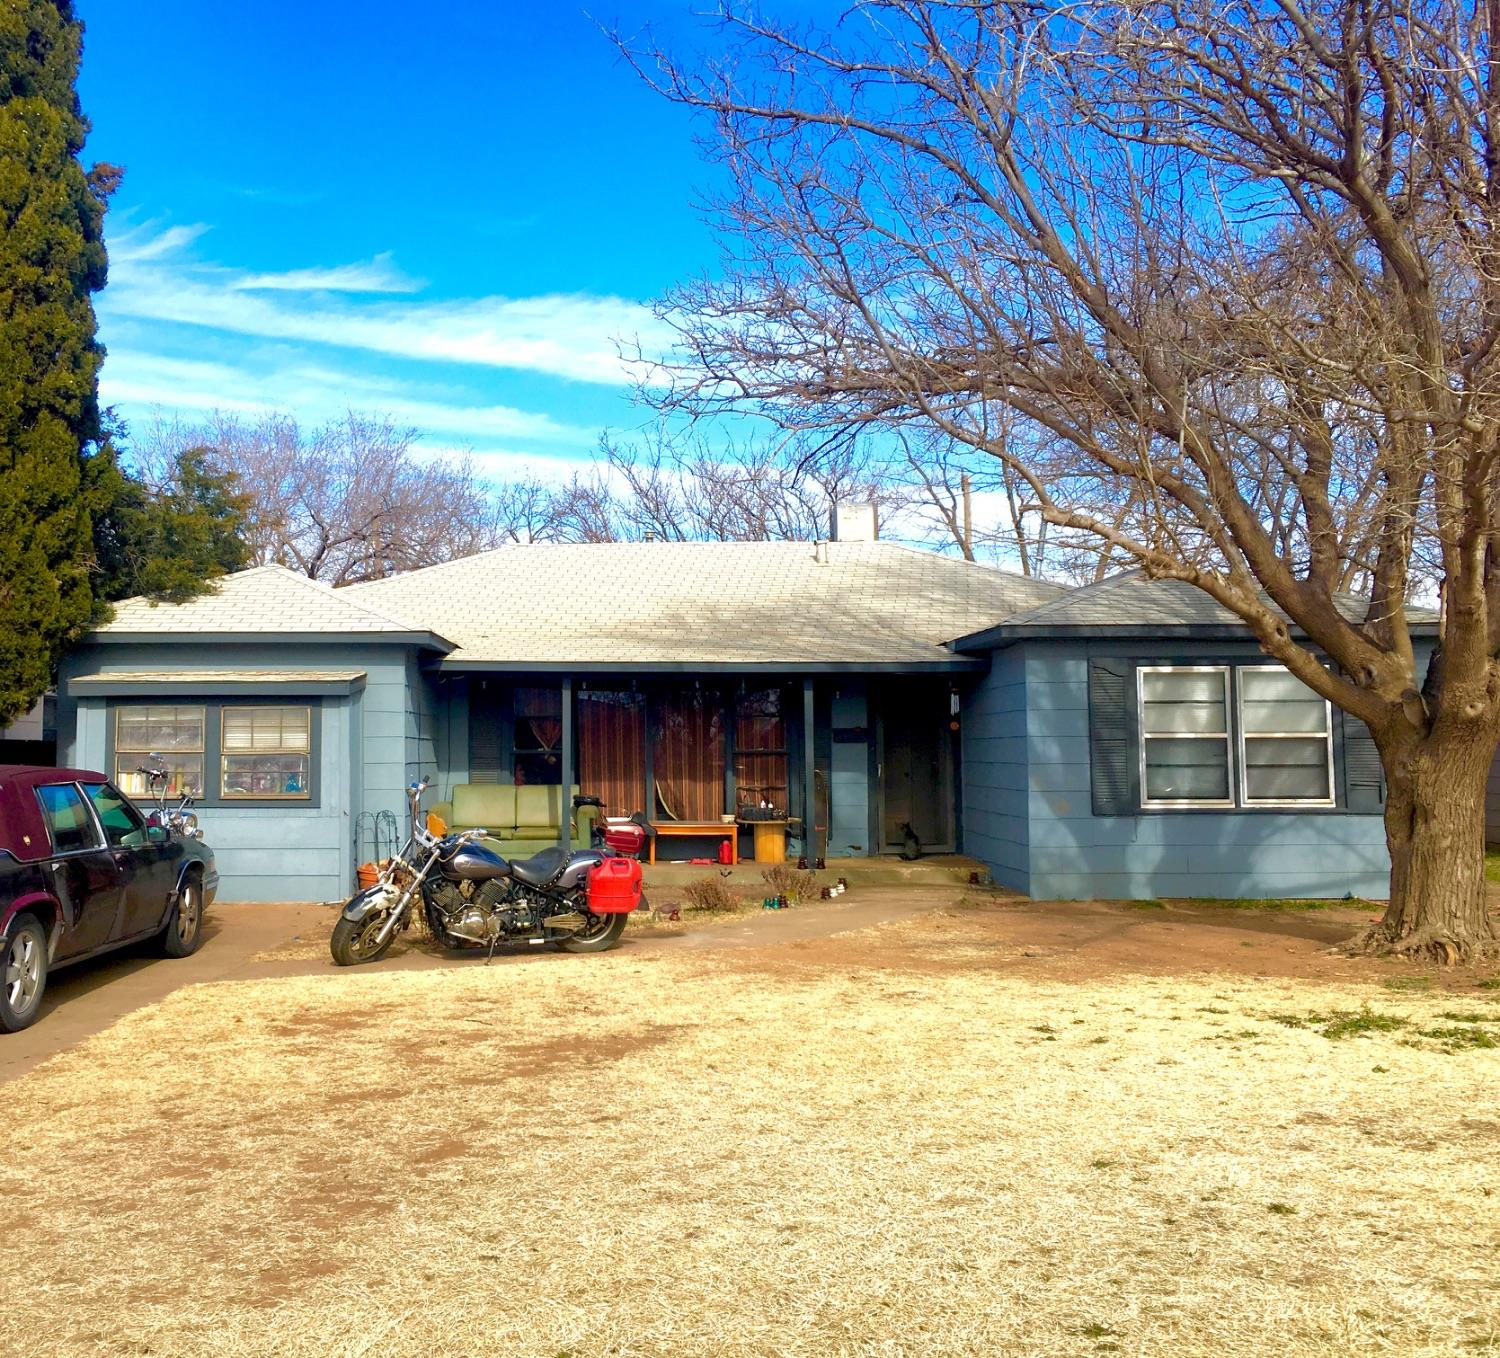 Charming investment home close to Texas Tech and the Medical District!  Wonderful opportunity to own rental property with great occupants.  This home is for investment purposes as it has tenants.  Lease terms convey with purchase.  Rents for $925/mo with $700 deposit and no pets.